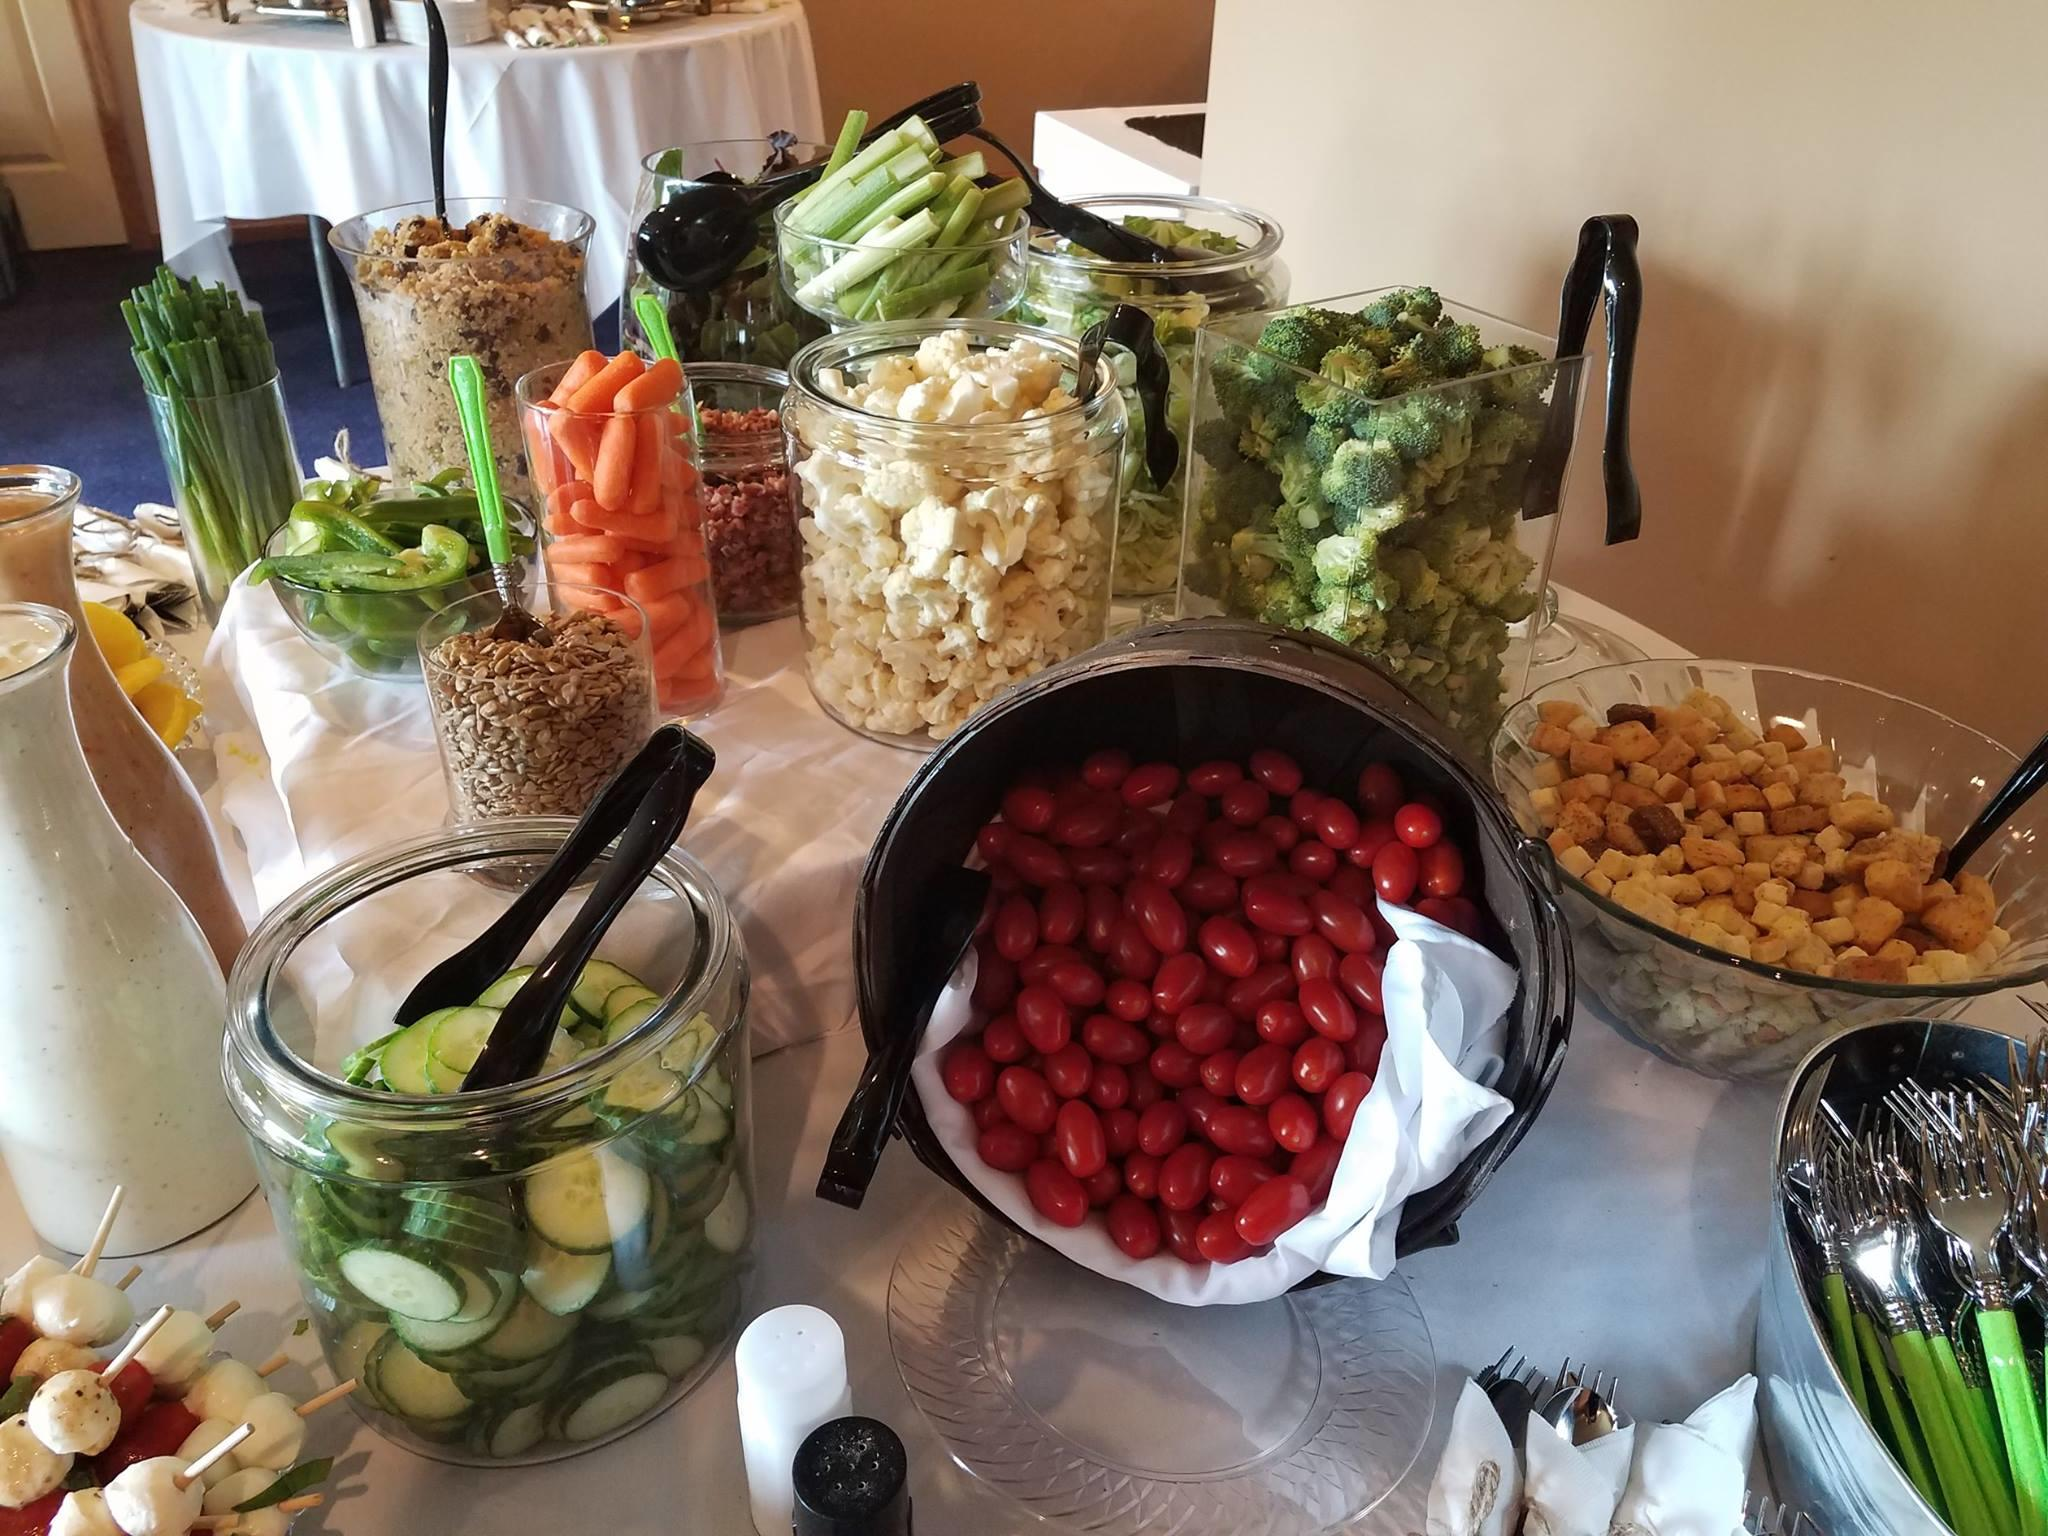 Creative Catering Services Inc. image 5